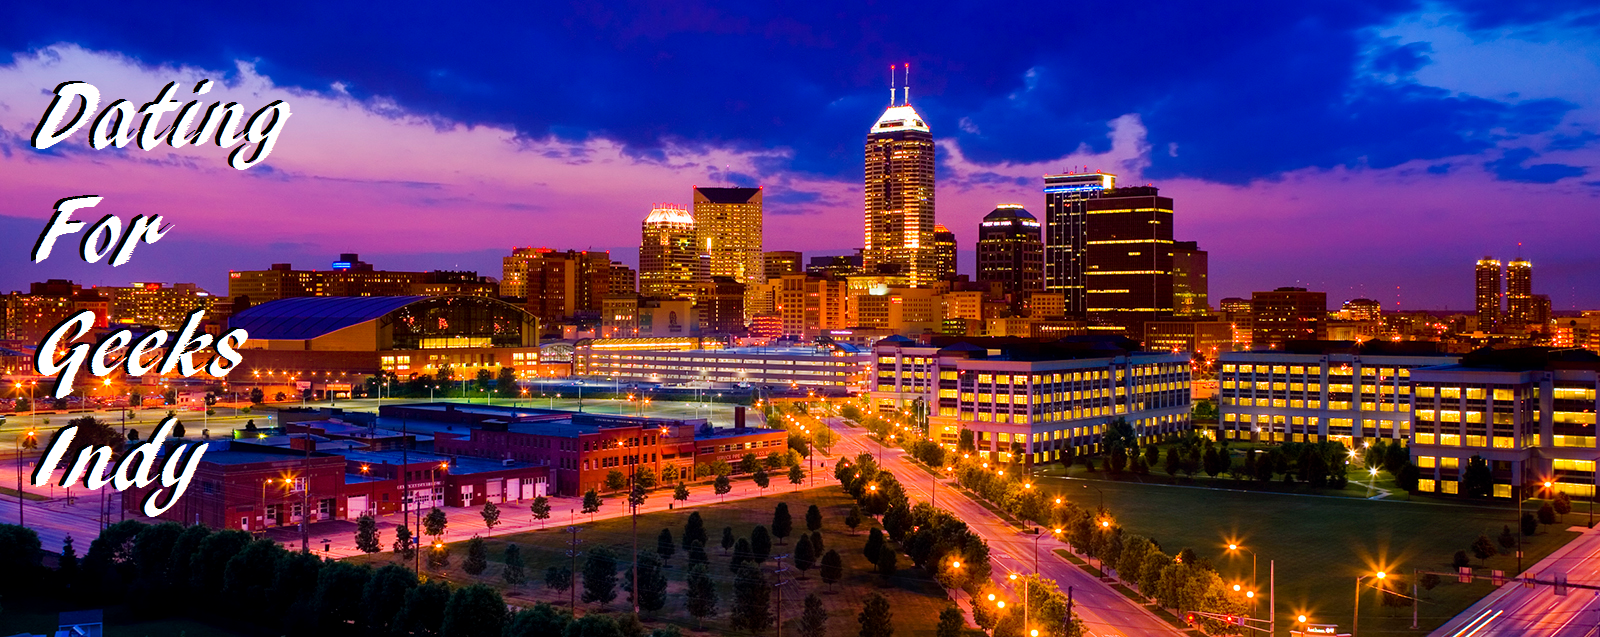 places to meet singles in indianapolis